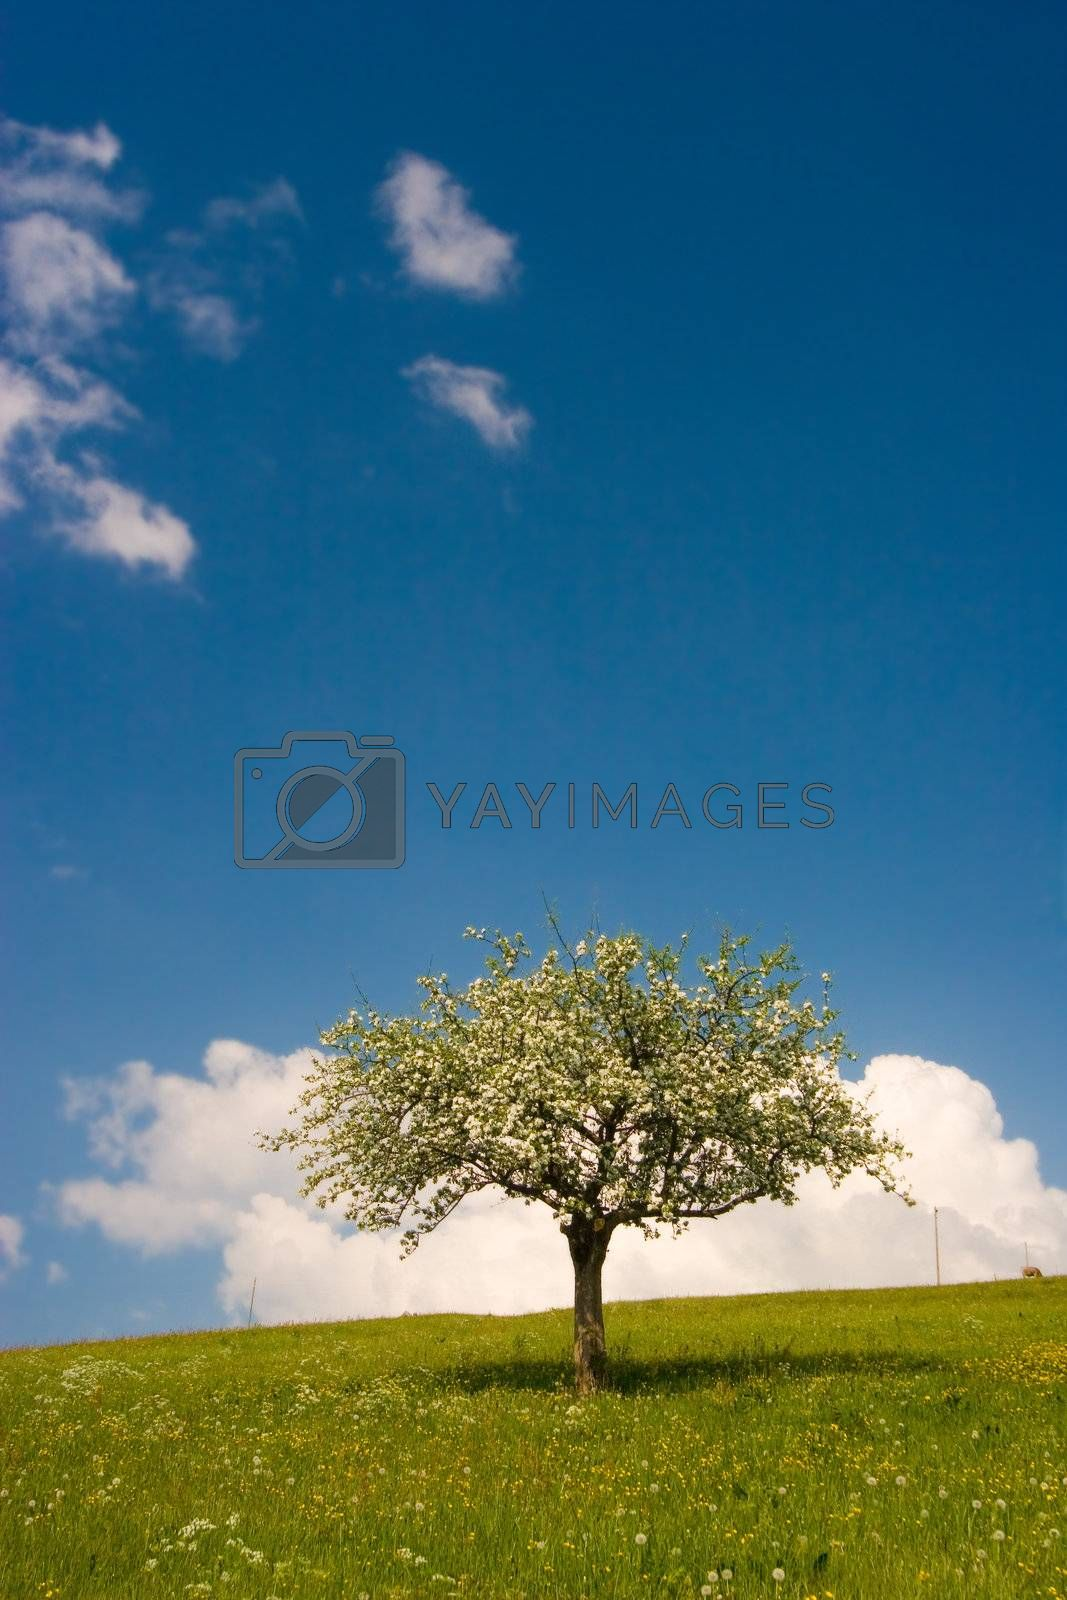 A tree in bloom on a green flowered field with blue sky and fluffy clouds